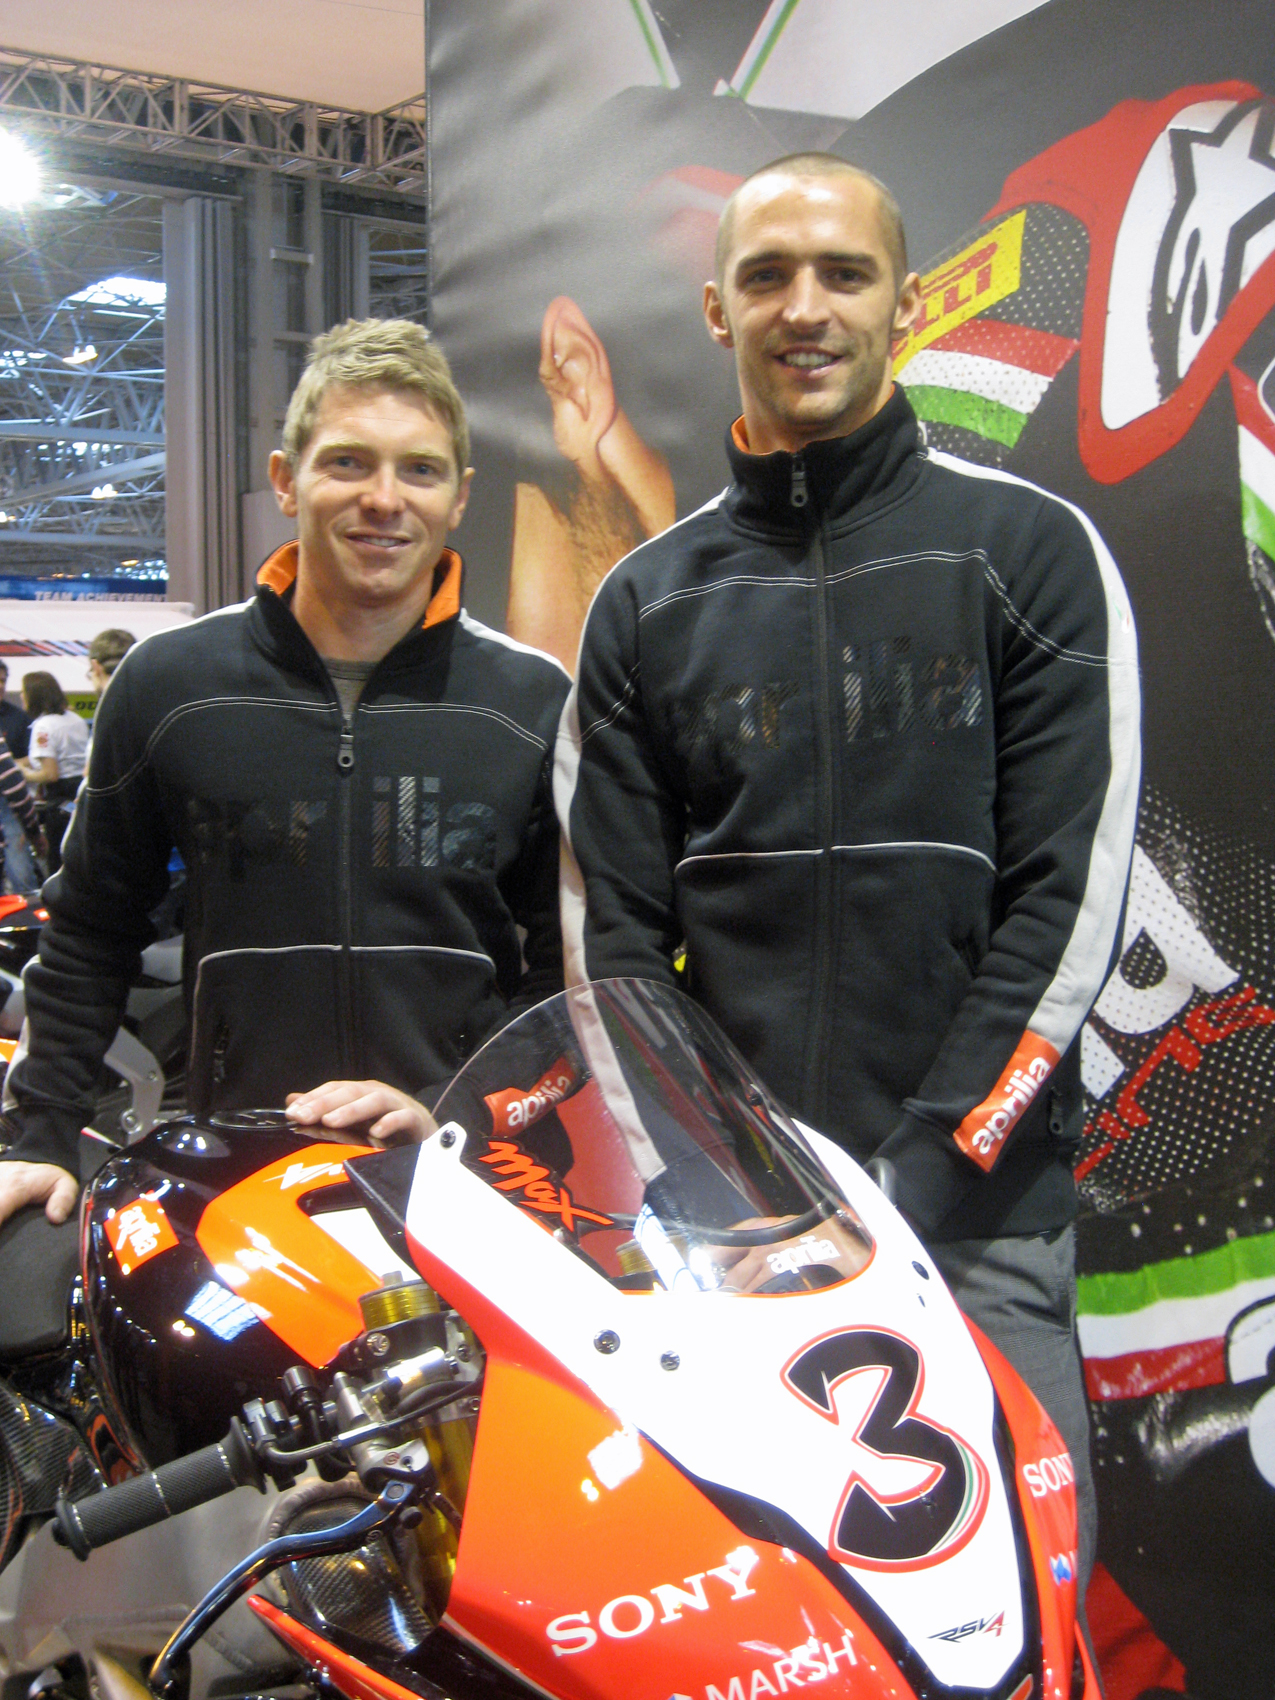 Kuba-and-Mark-Aprilia_edited-1